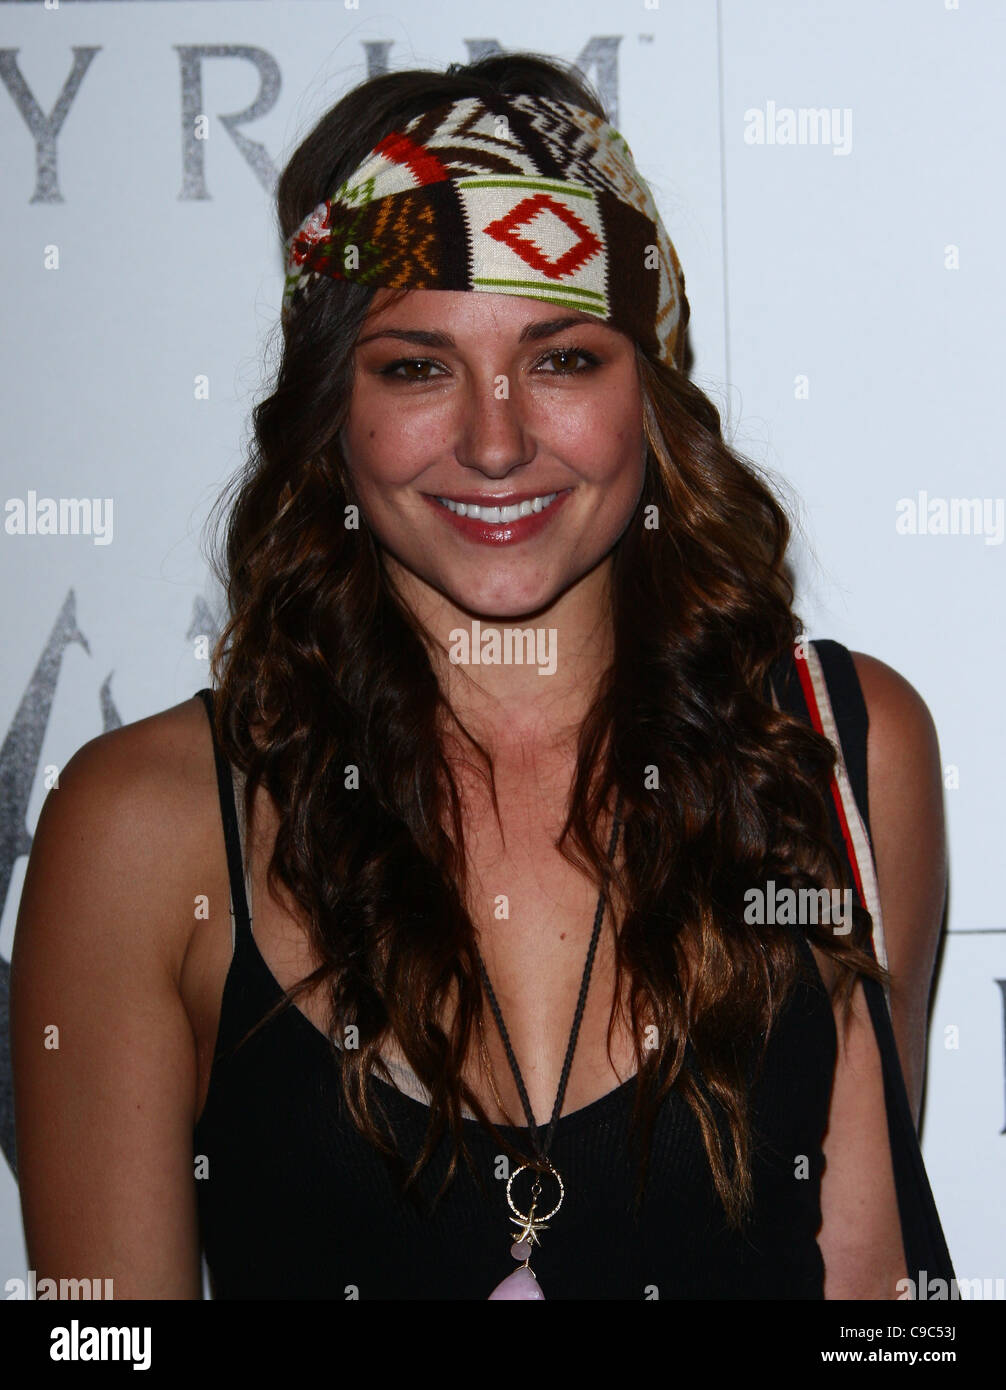 Video Briana Evigan nudes (32 photos), Tits, Cleavage, Twitter, bra 2017